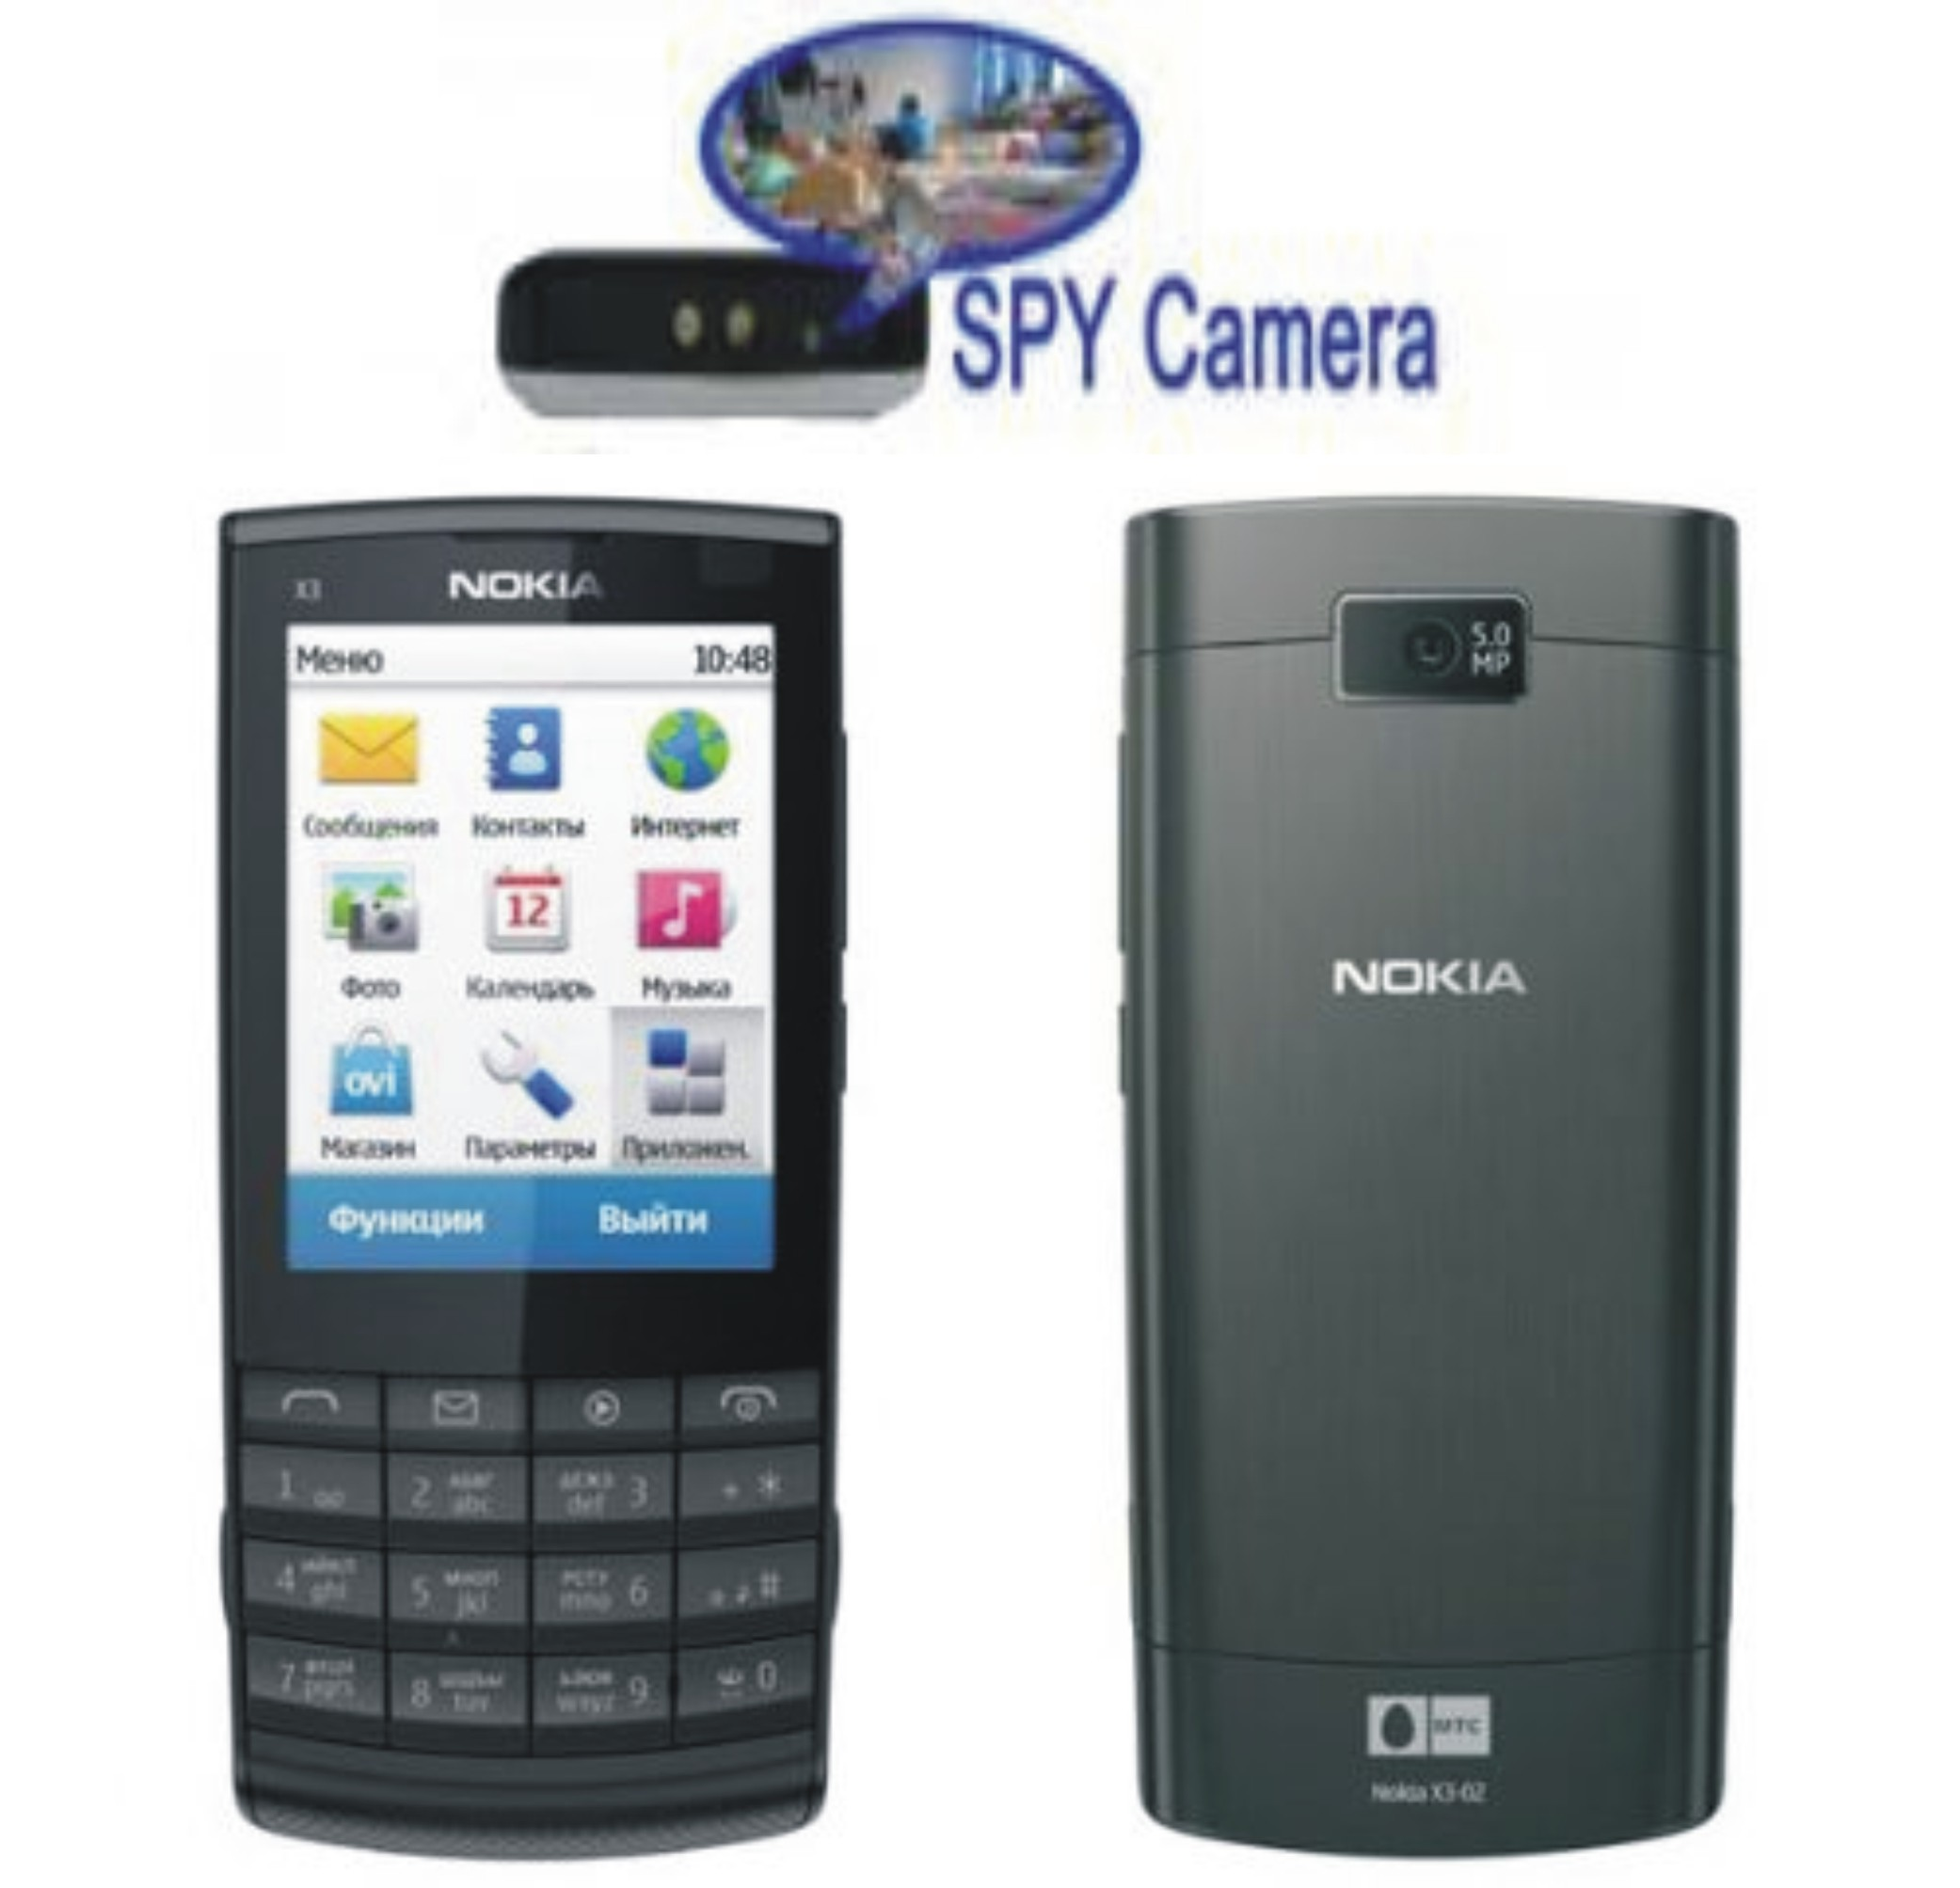 Spy Camera In Nokia Phone Touch Screen In Karad